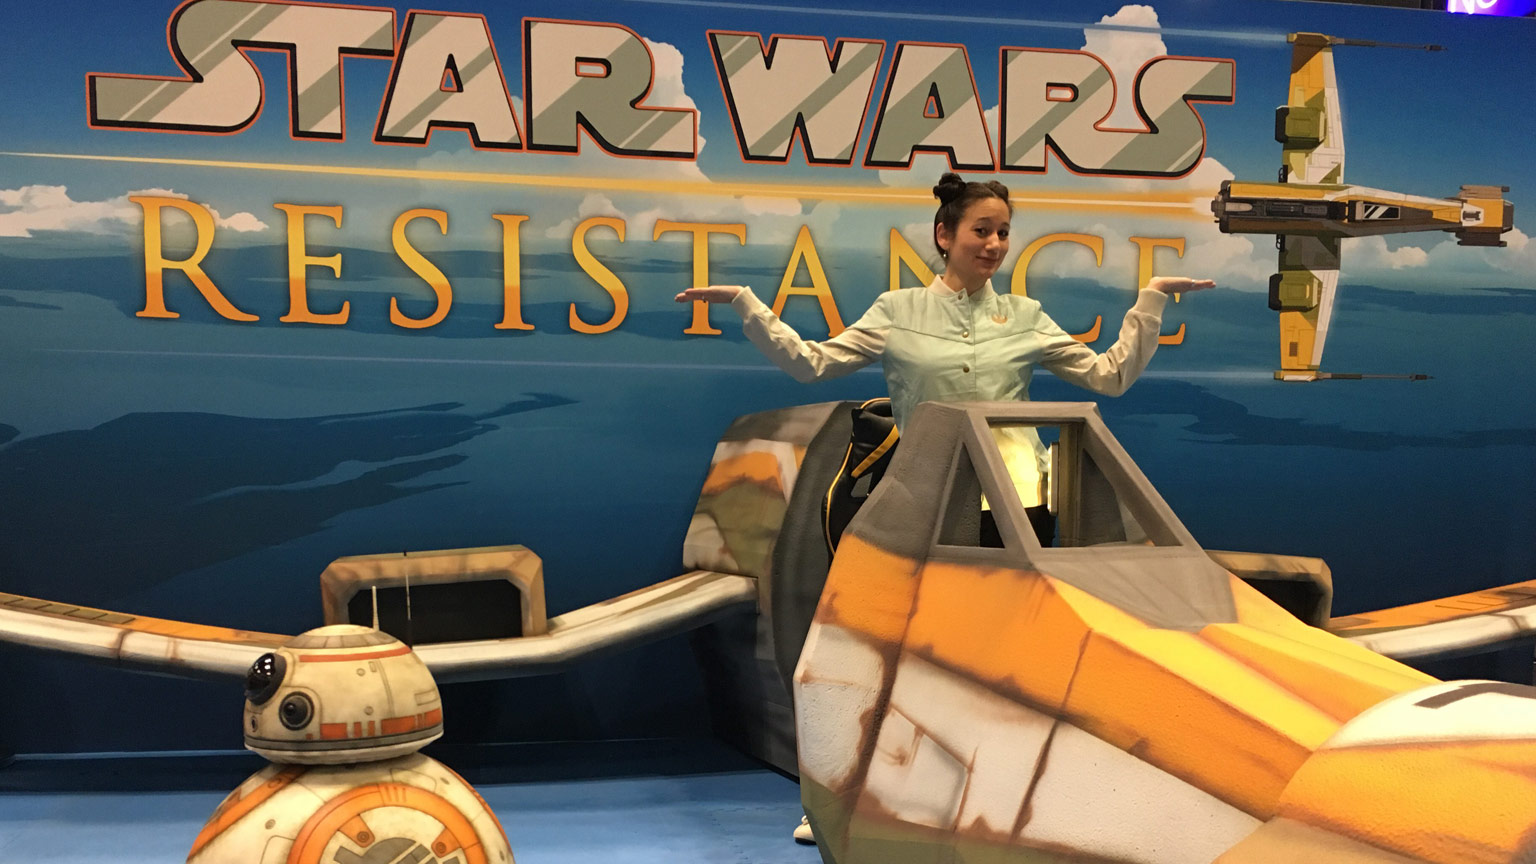 StarWars.com writer Bria LaVorgna in the Fireball cockpit at NYCC with BB-8.